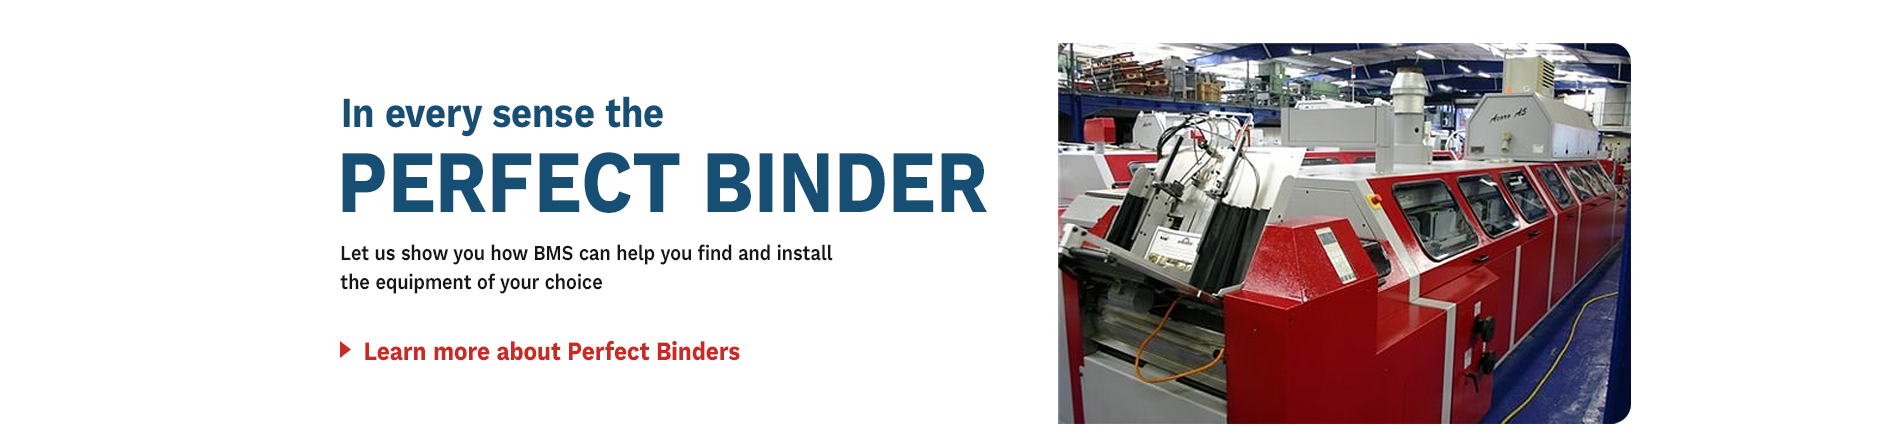 In Every Sense the Perfect Binder